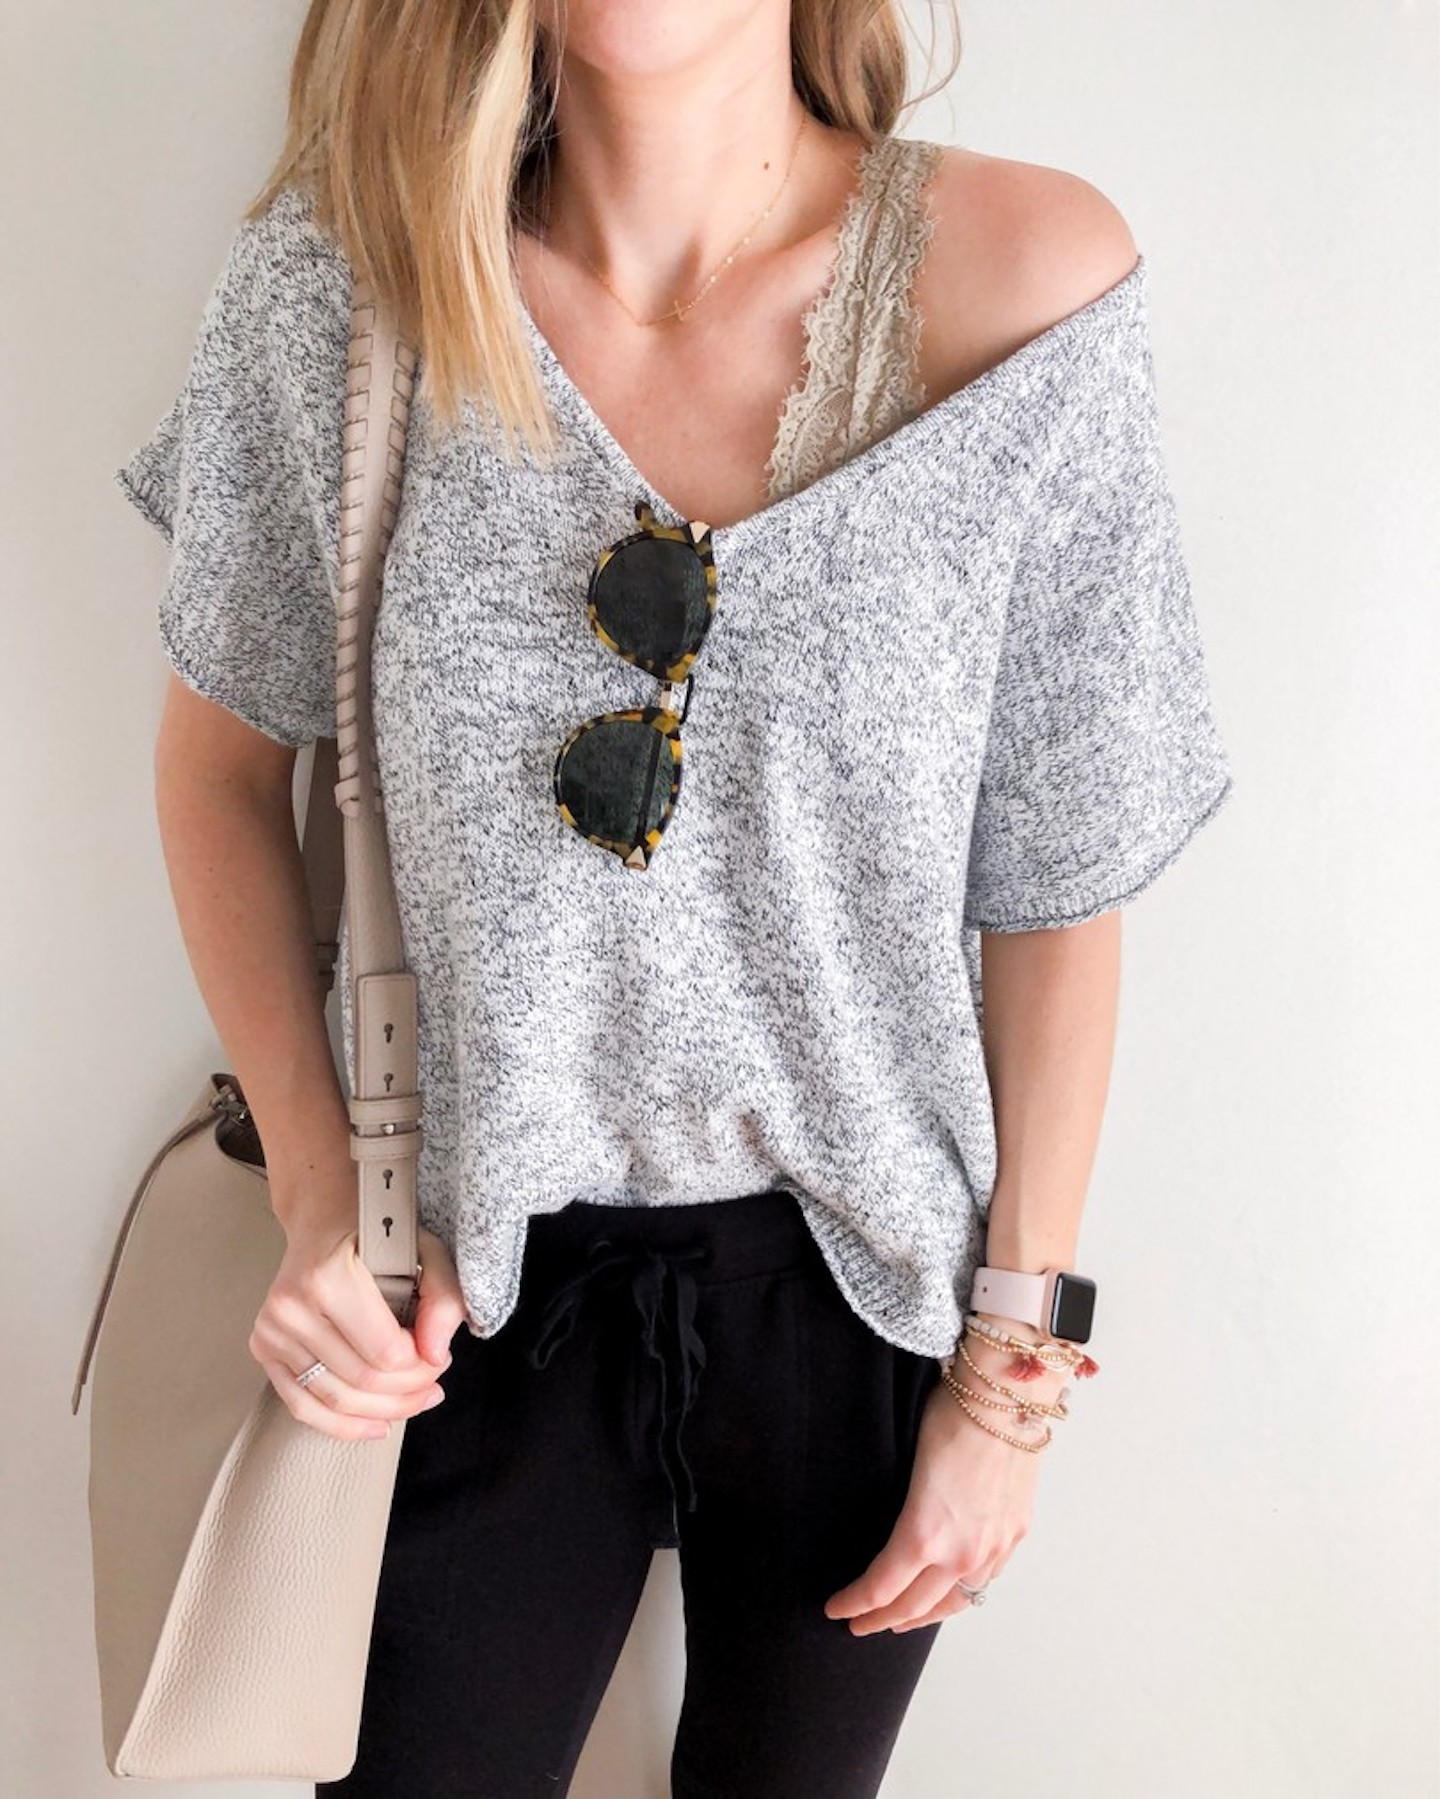 black joggers, a grey crochet oversized top and a grey lace bralette for a casual home look